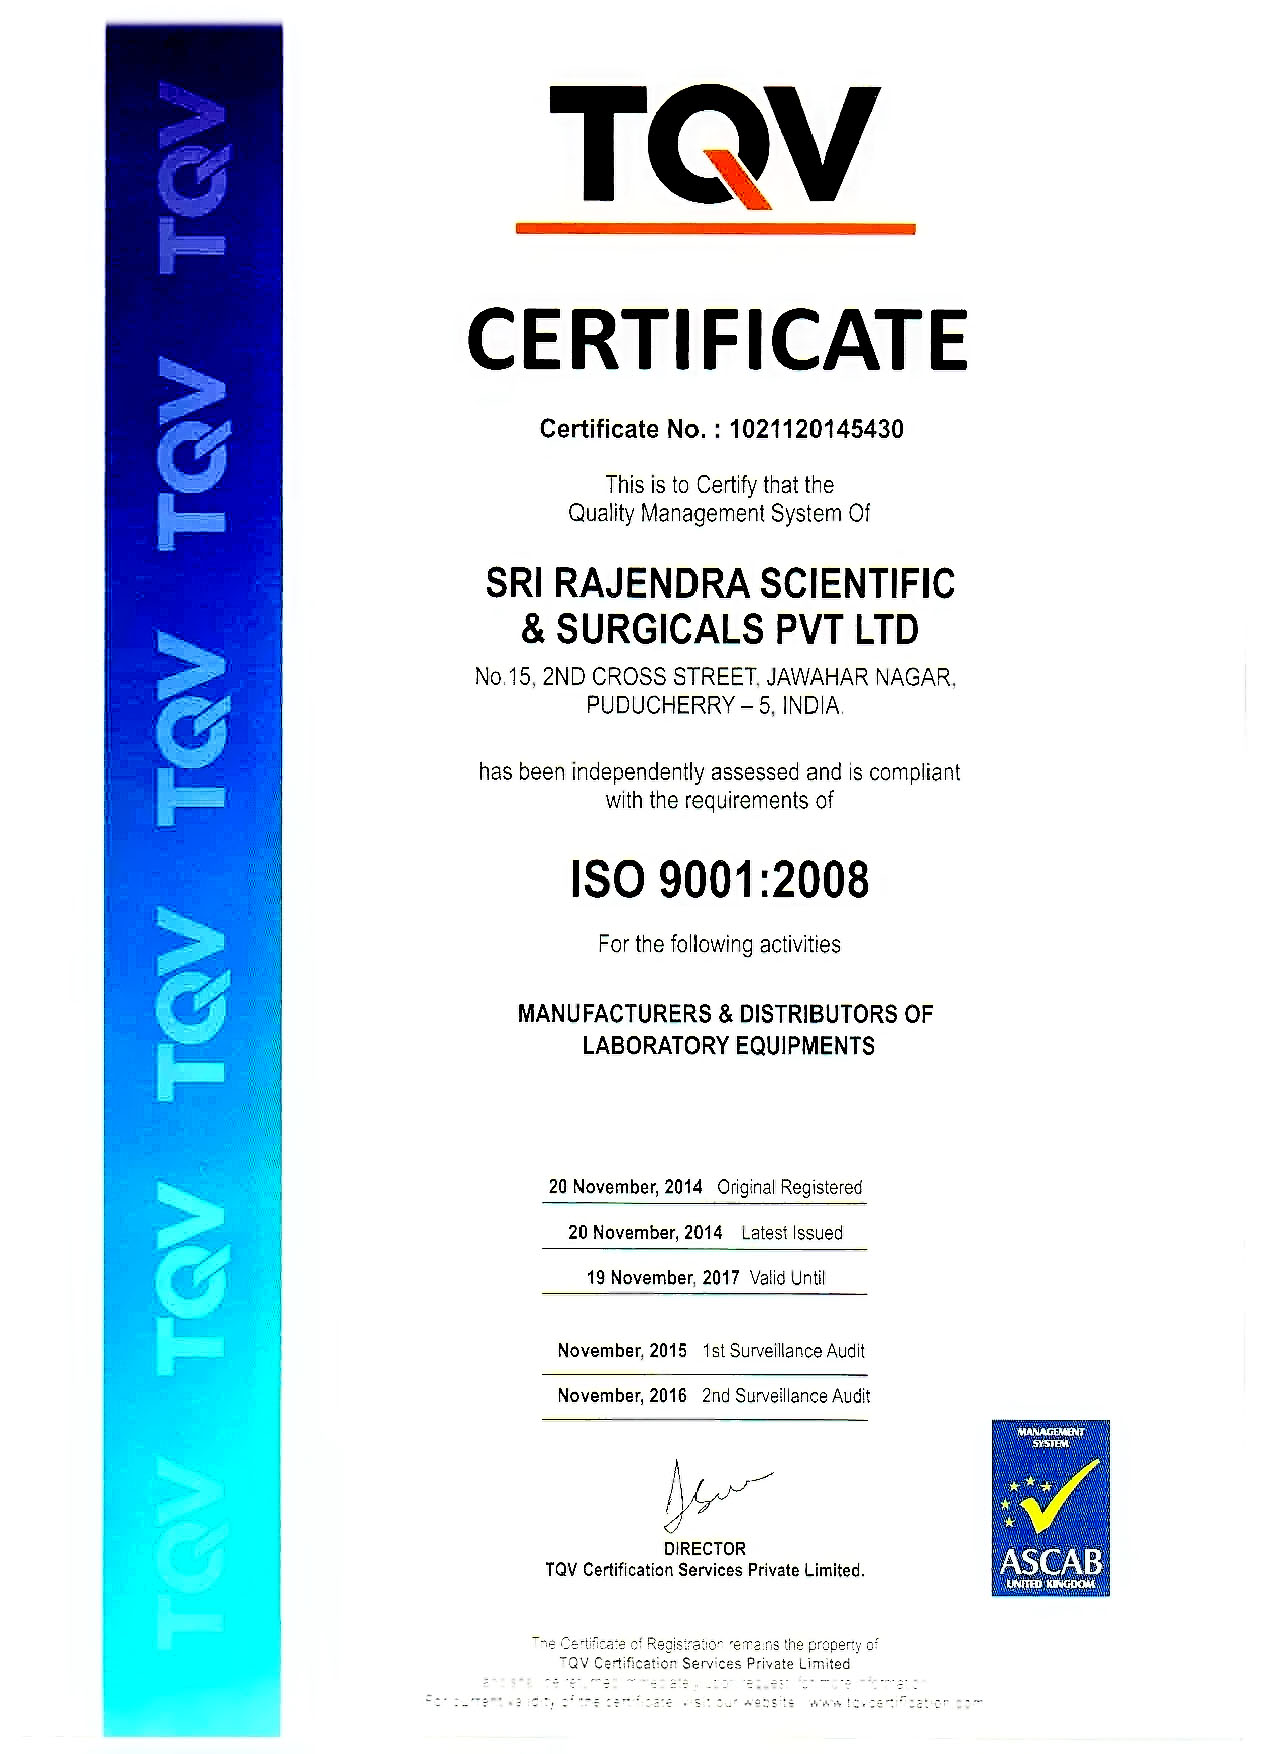 Tqv sri rajendra scientific and surgicals pvt limited tqv certificate xflitez Image collections